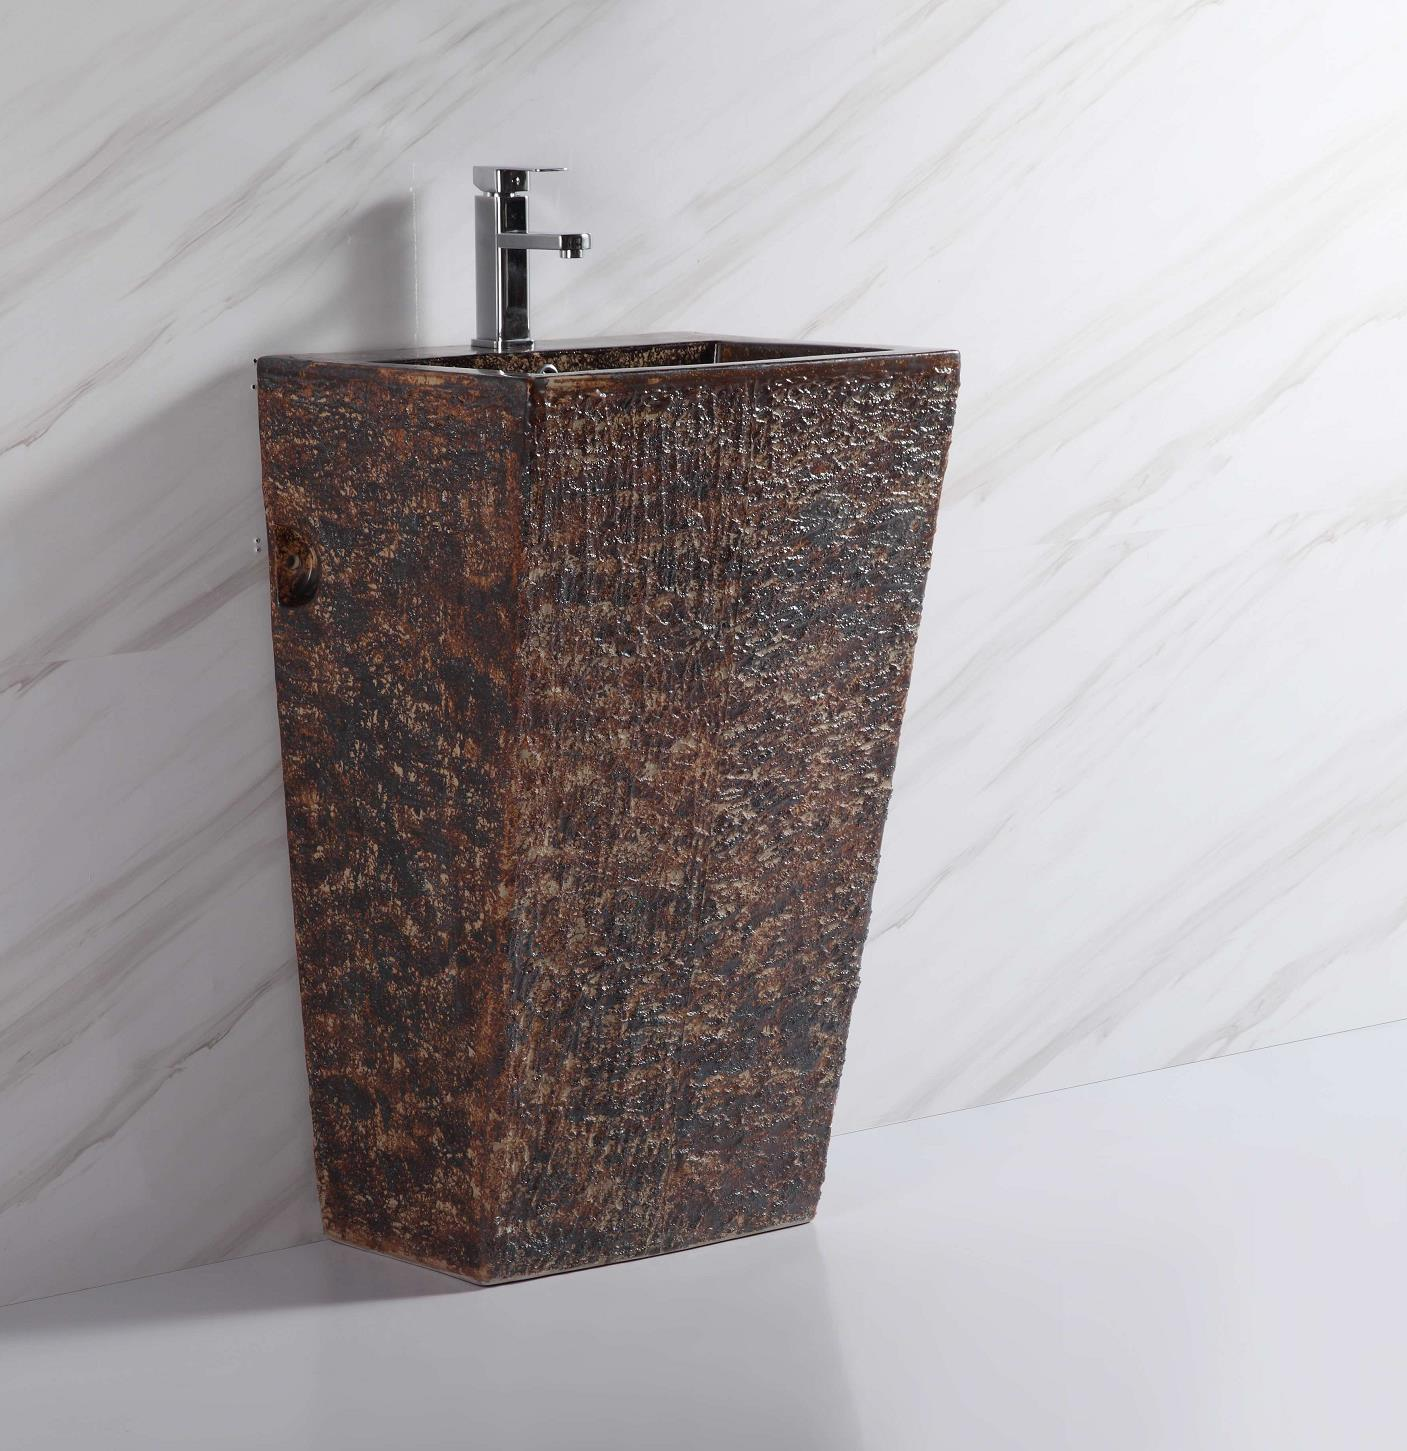 110903 hot sale bathroom red and brown color square shape ceramic pedestal basin sink with standing for noble